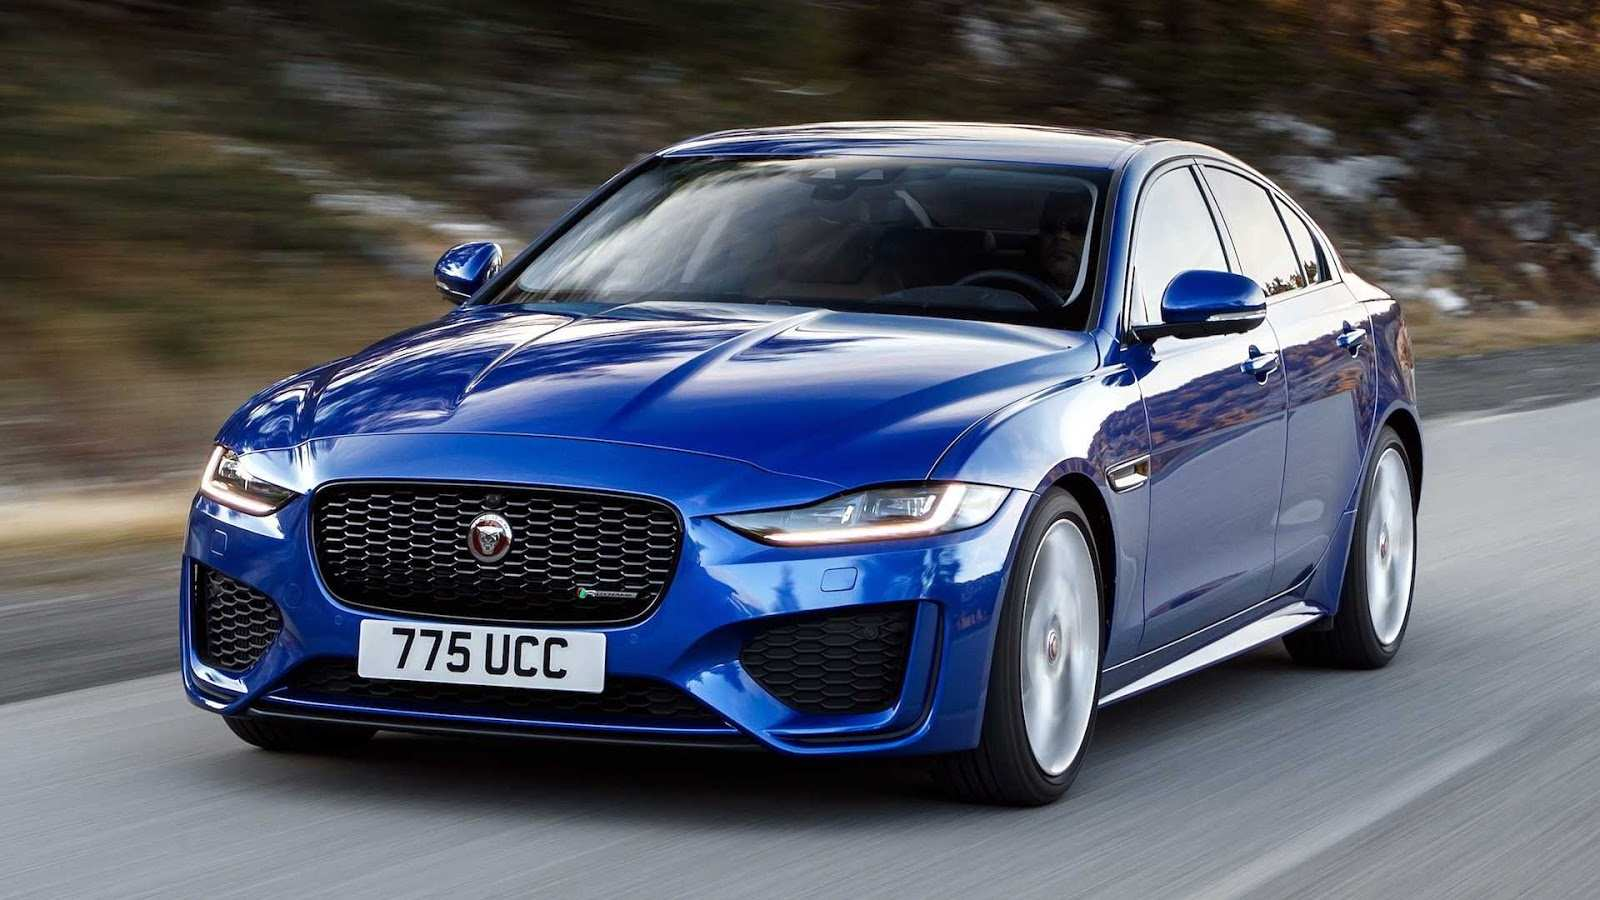 63 Gallery of 2020 Jaguar Xe Build New Concept for 2020 Jaguar Xe Build